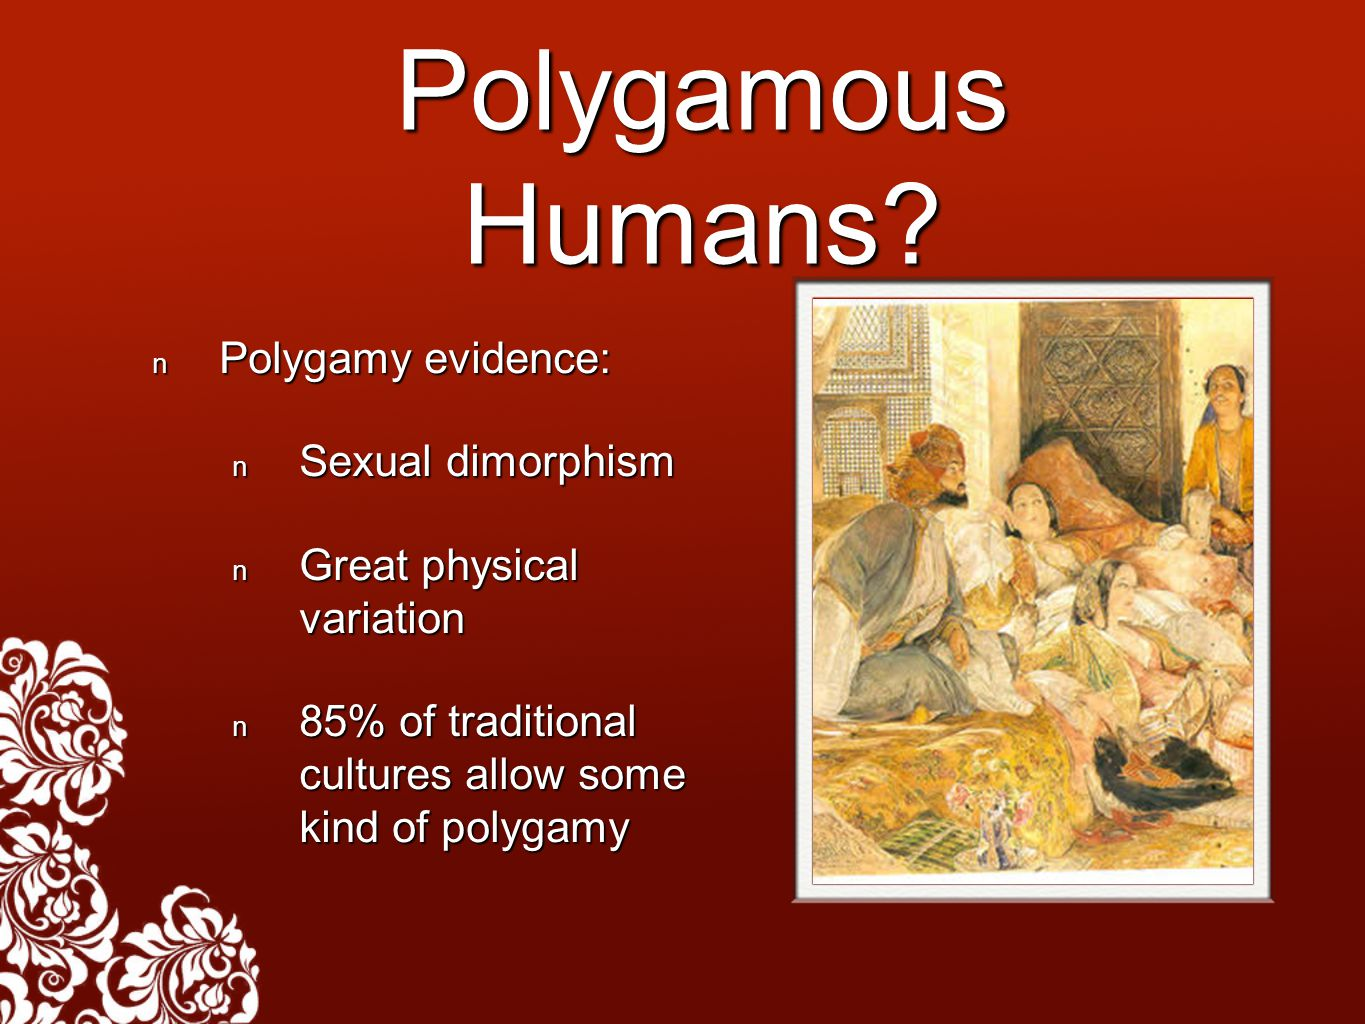 Polygamous Humans.